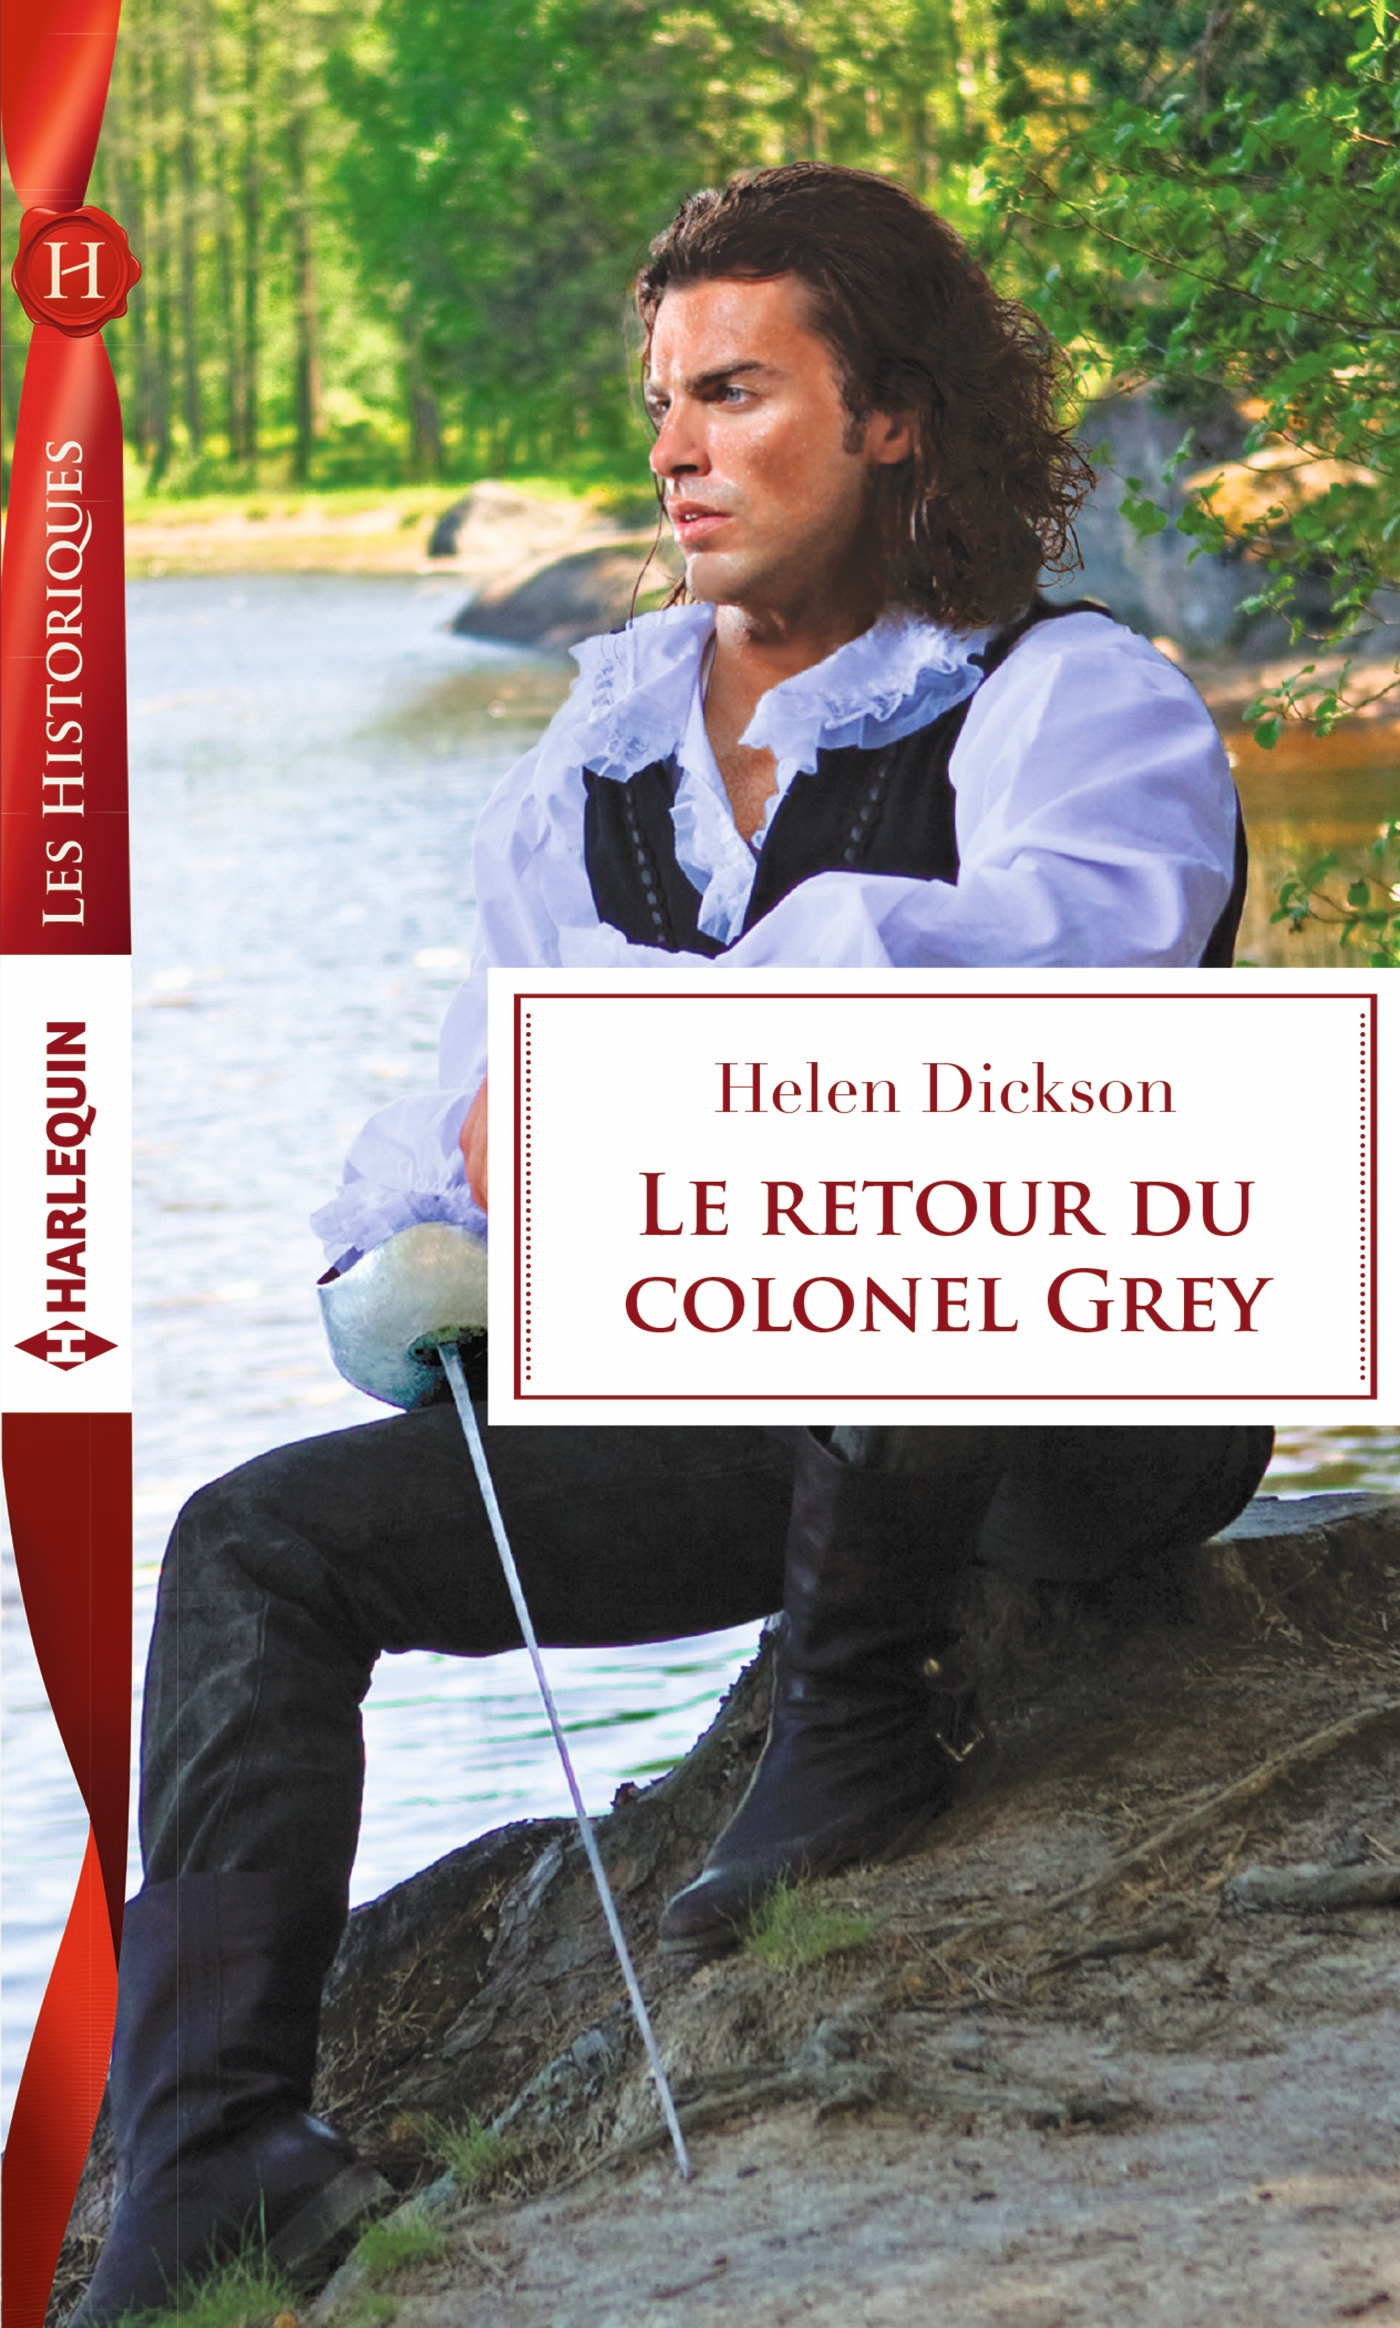 Le retour du colonel Grey